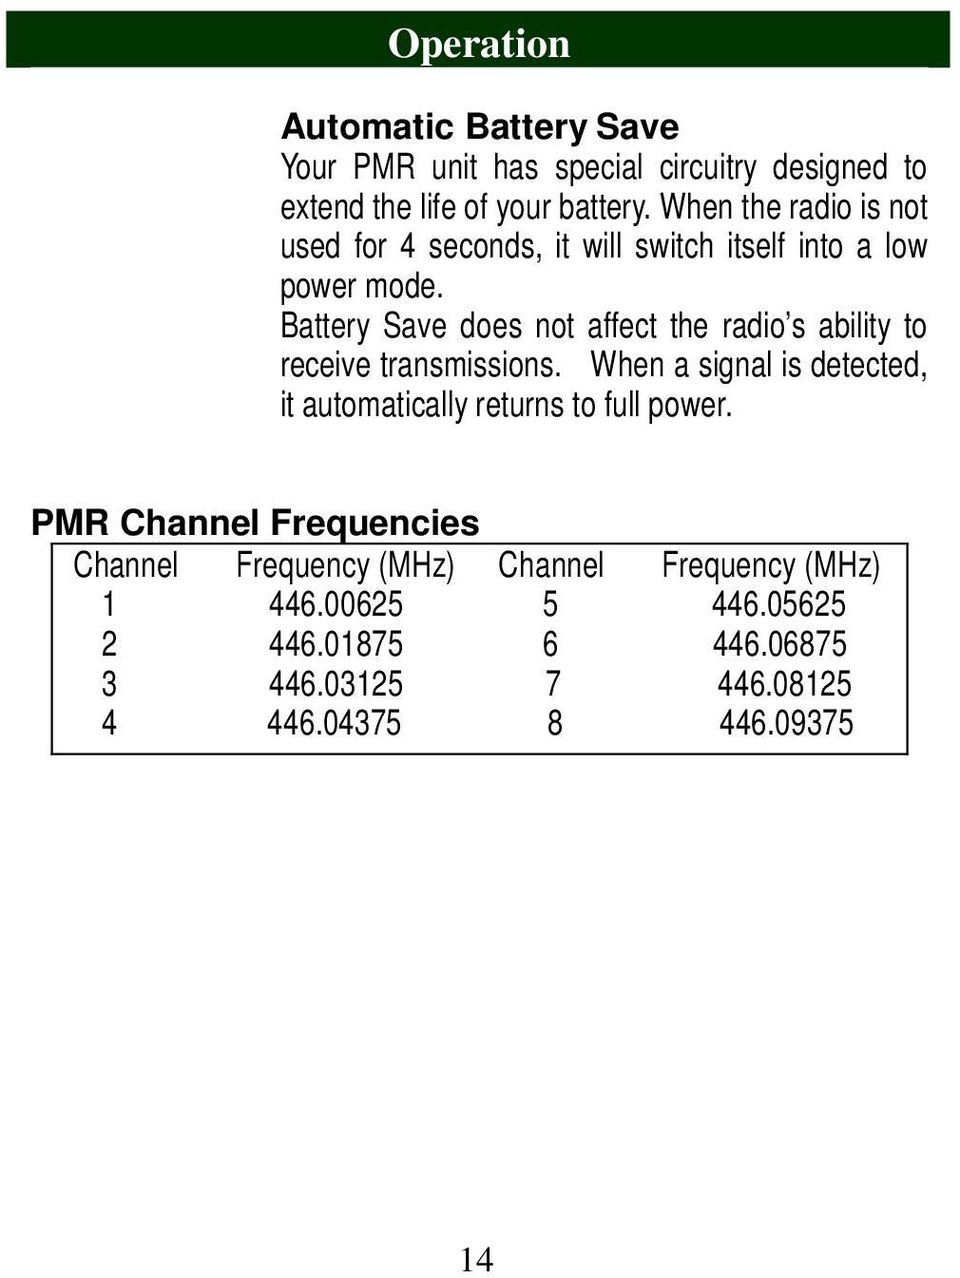 Battery Save does not affect the radio s ability to receive transmissions.